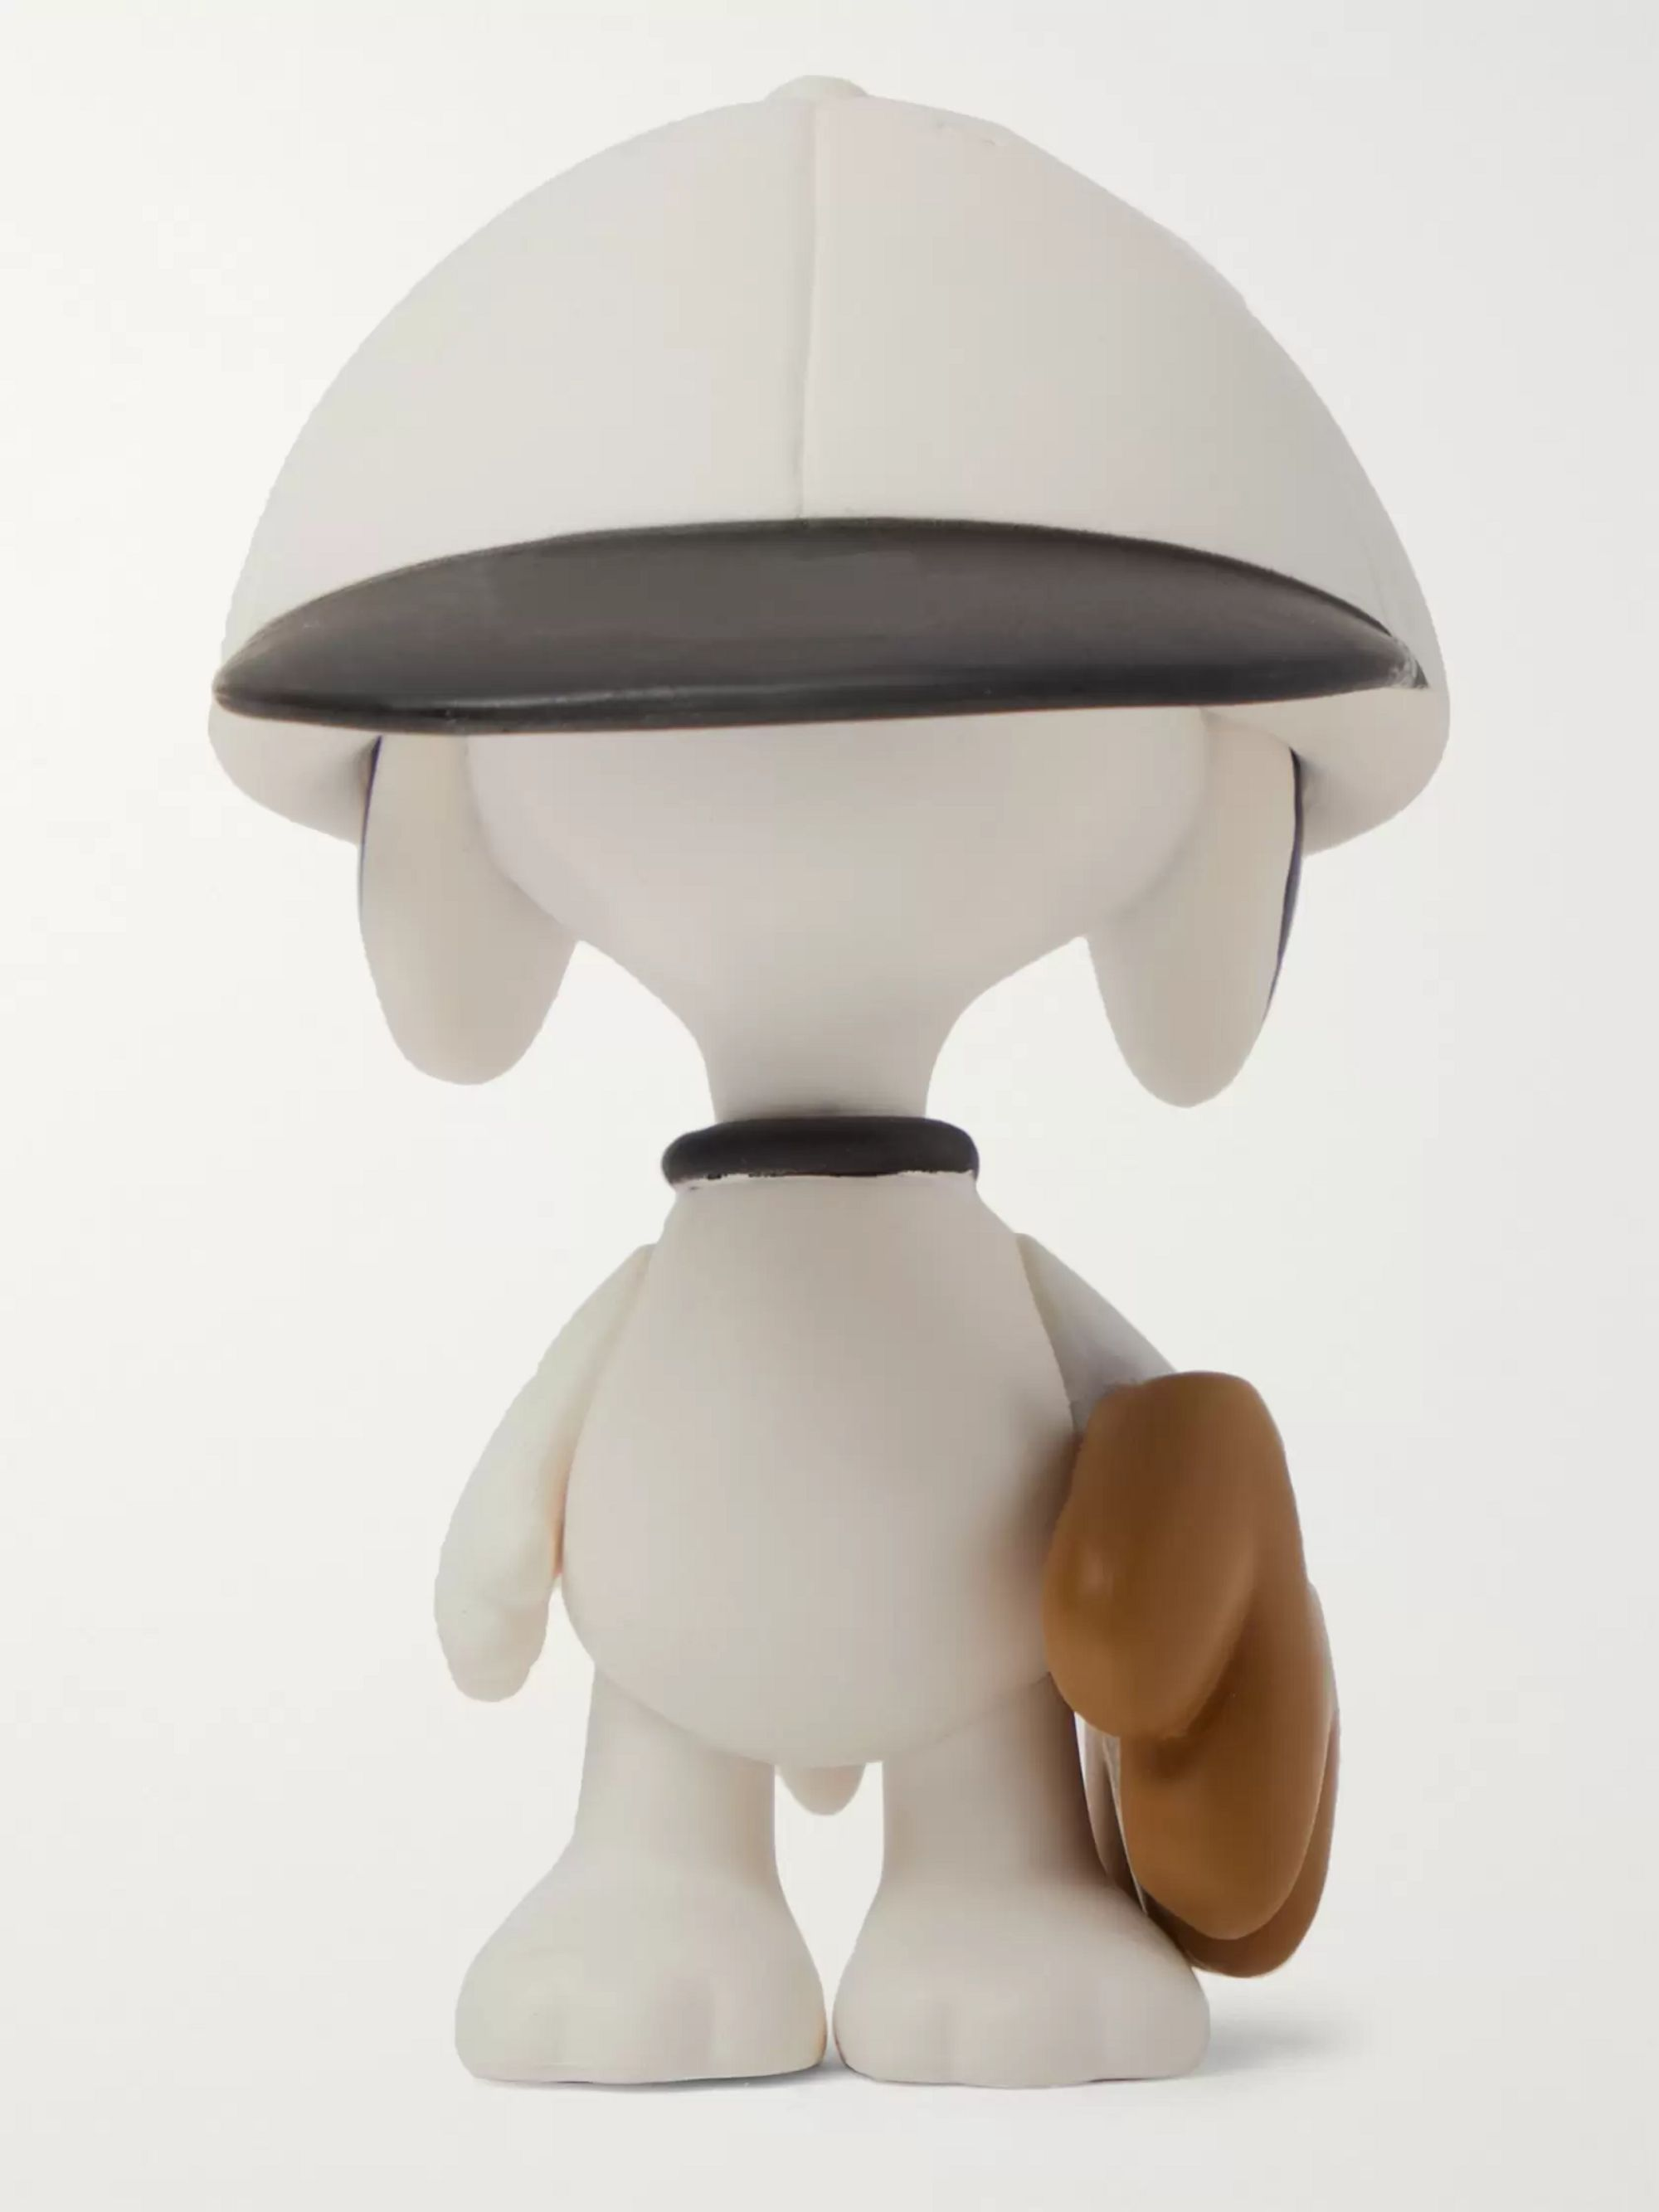 Medicom Ultra Detail Figure Series 8 No.433 Joe Cool Snoopy with Surfboard